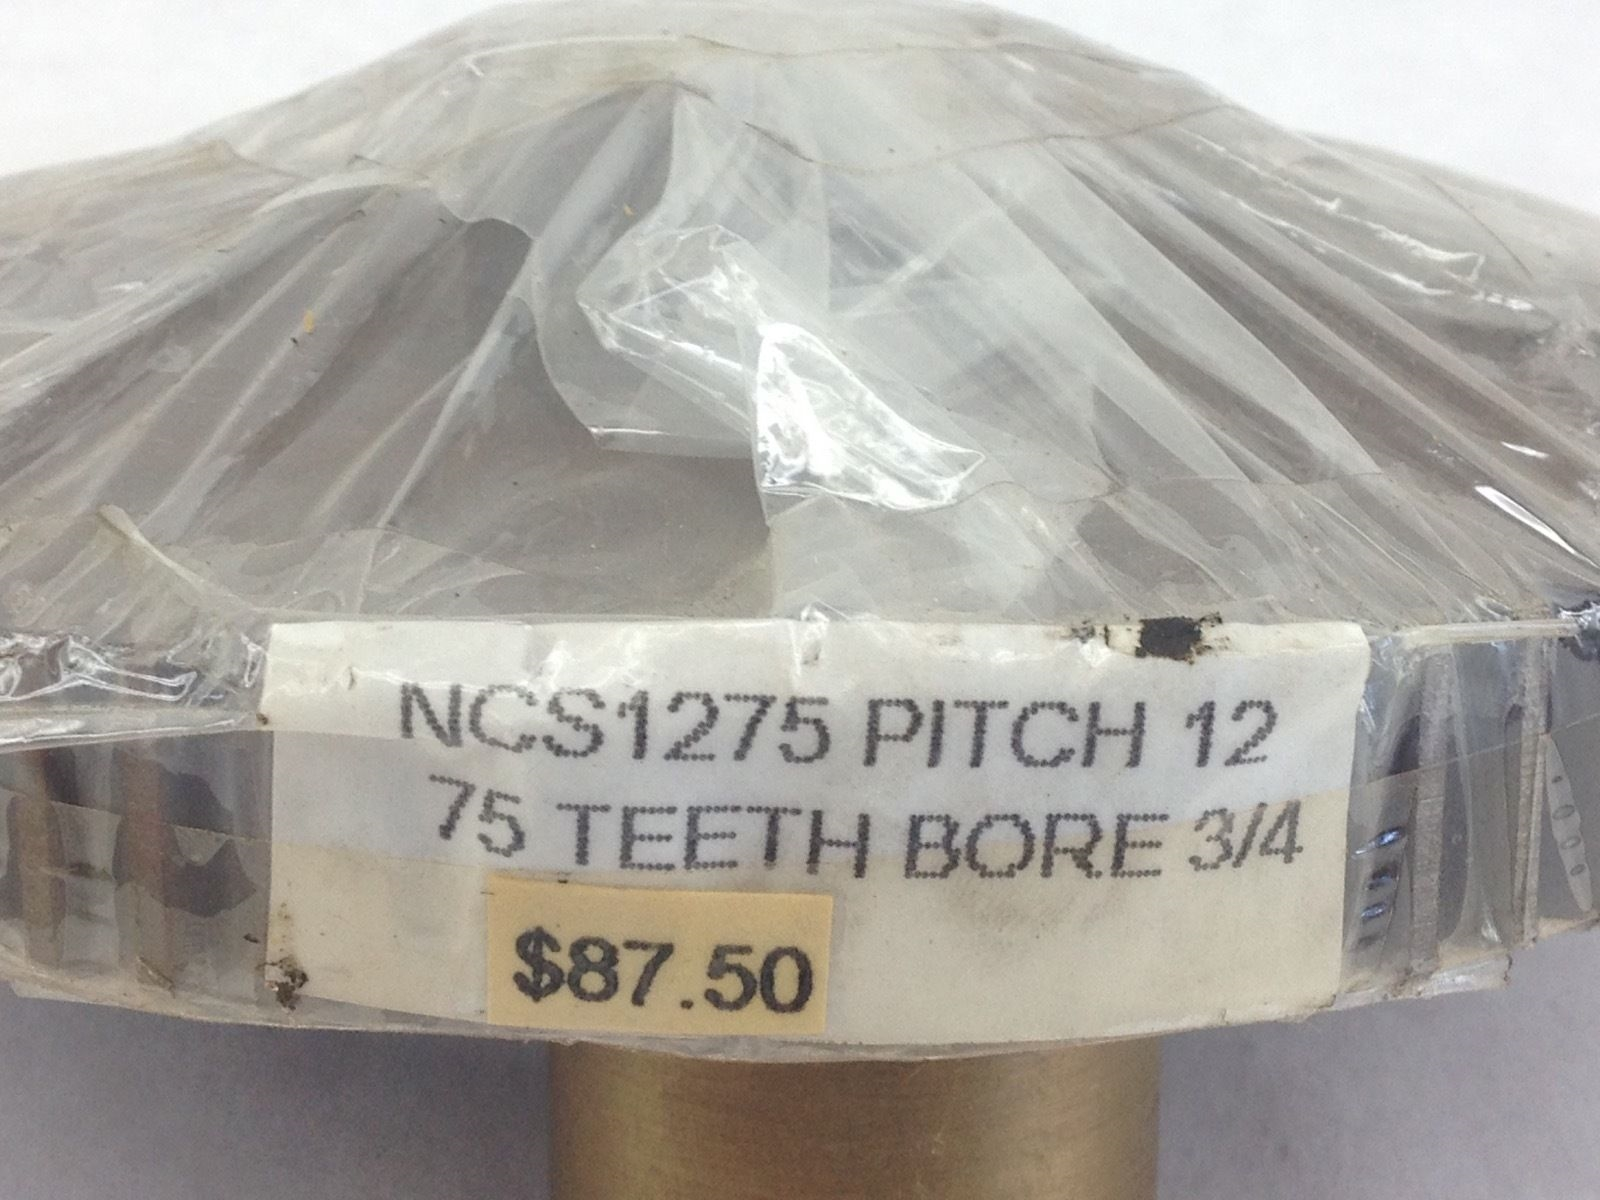 NEW! NO BRAND NCS1275 SPUR GEAR 12P 75T 3/4� BORE, KEYWAY FAST SHIP!!! (J24) 2